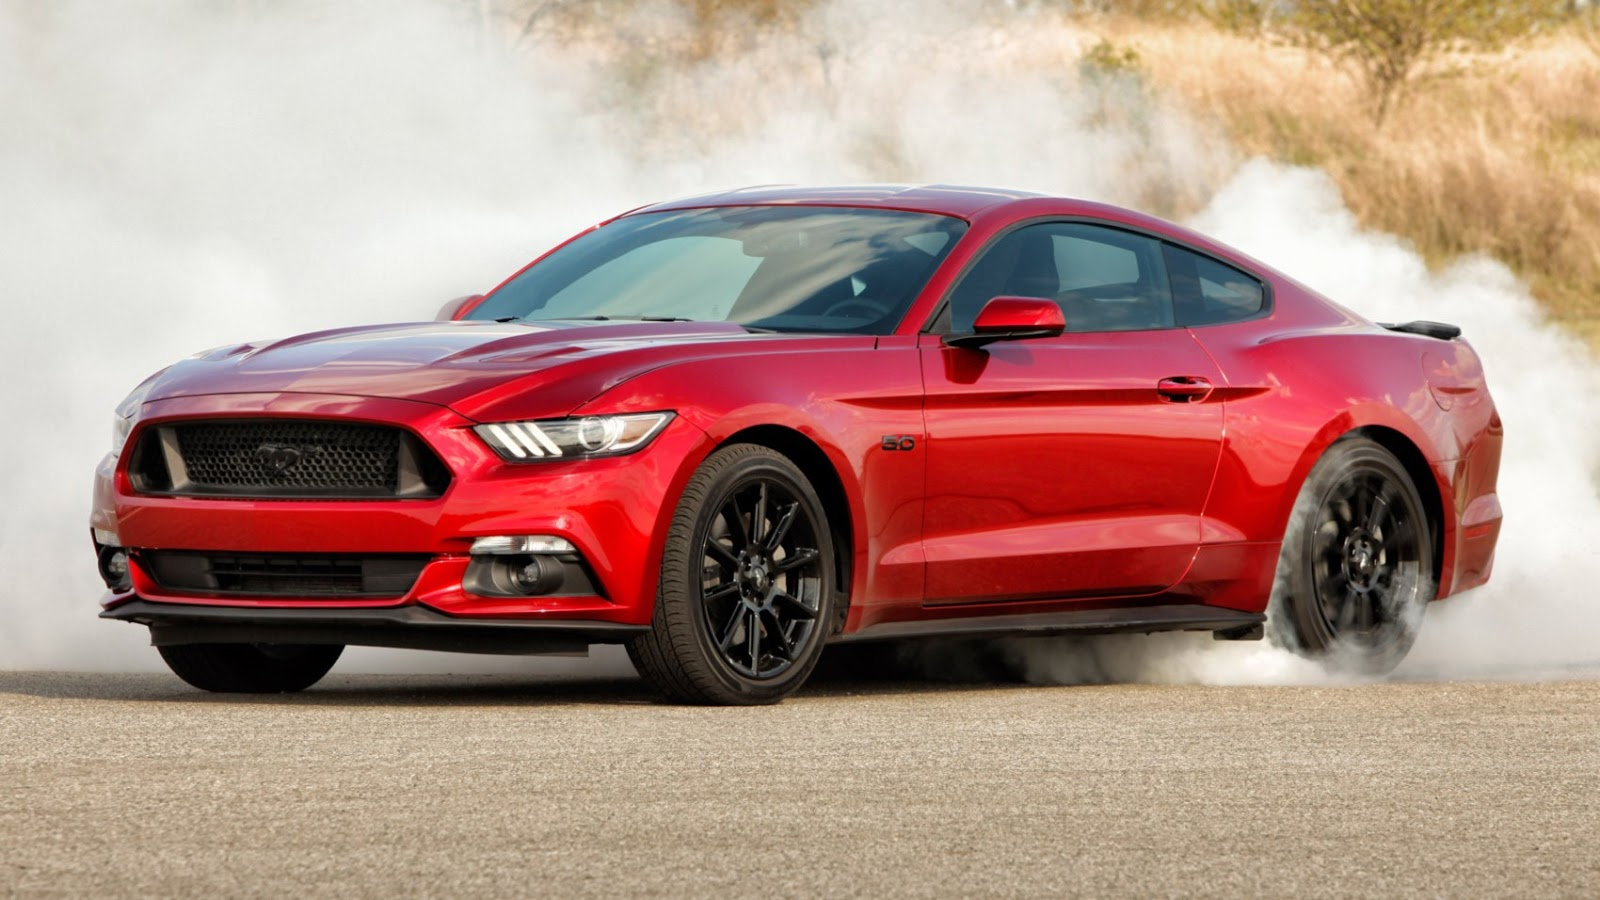 According To Ford The Mustang Is Officially Germanyu0027s Most Popular Sports  Car, Since The Sixth Generation Of The Muscle Car Began To Sell There  Nearly A ...